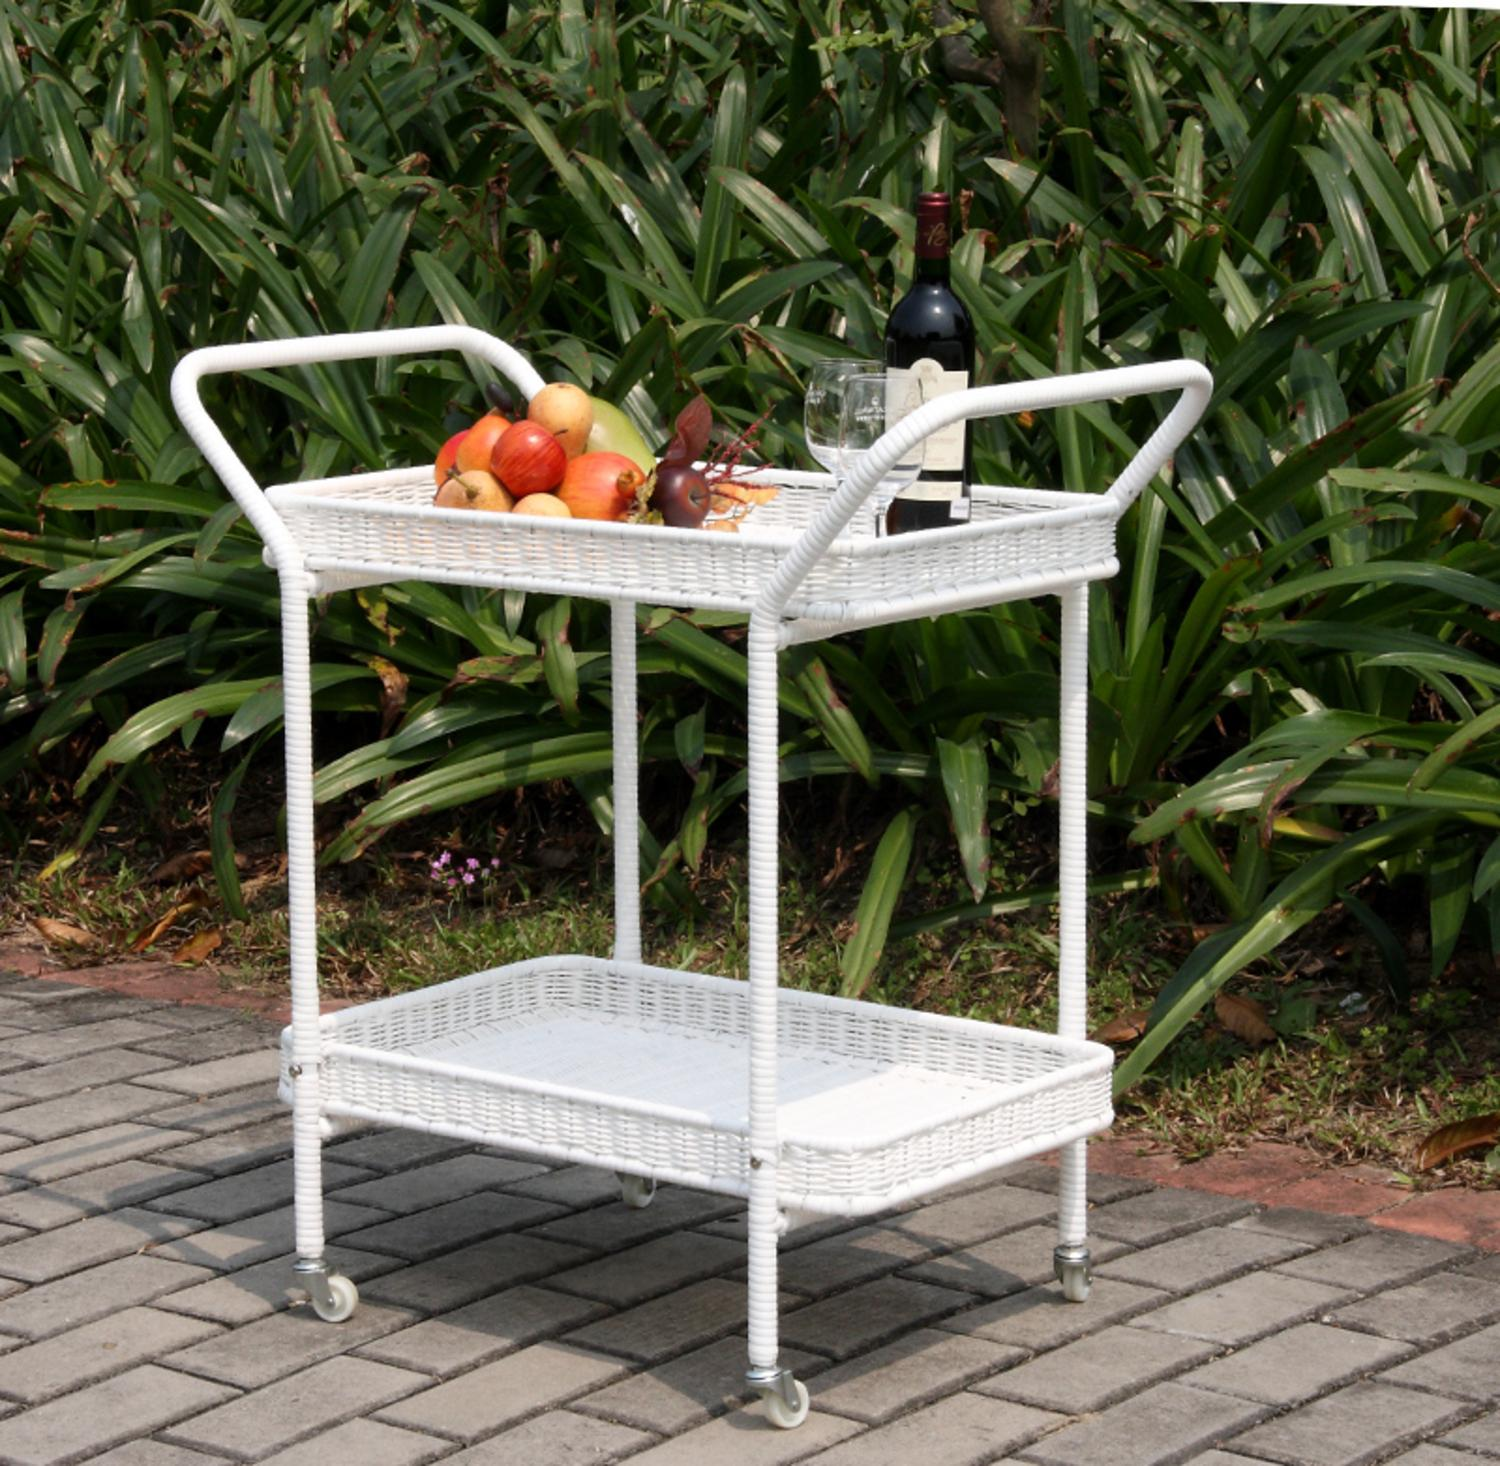 """32"""" White Resin Wicker Outdoor Patio Garden Serving Cart with Wheels by CC Outdoor Living"""